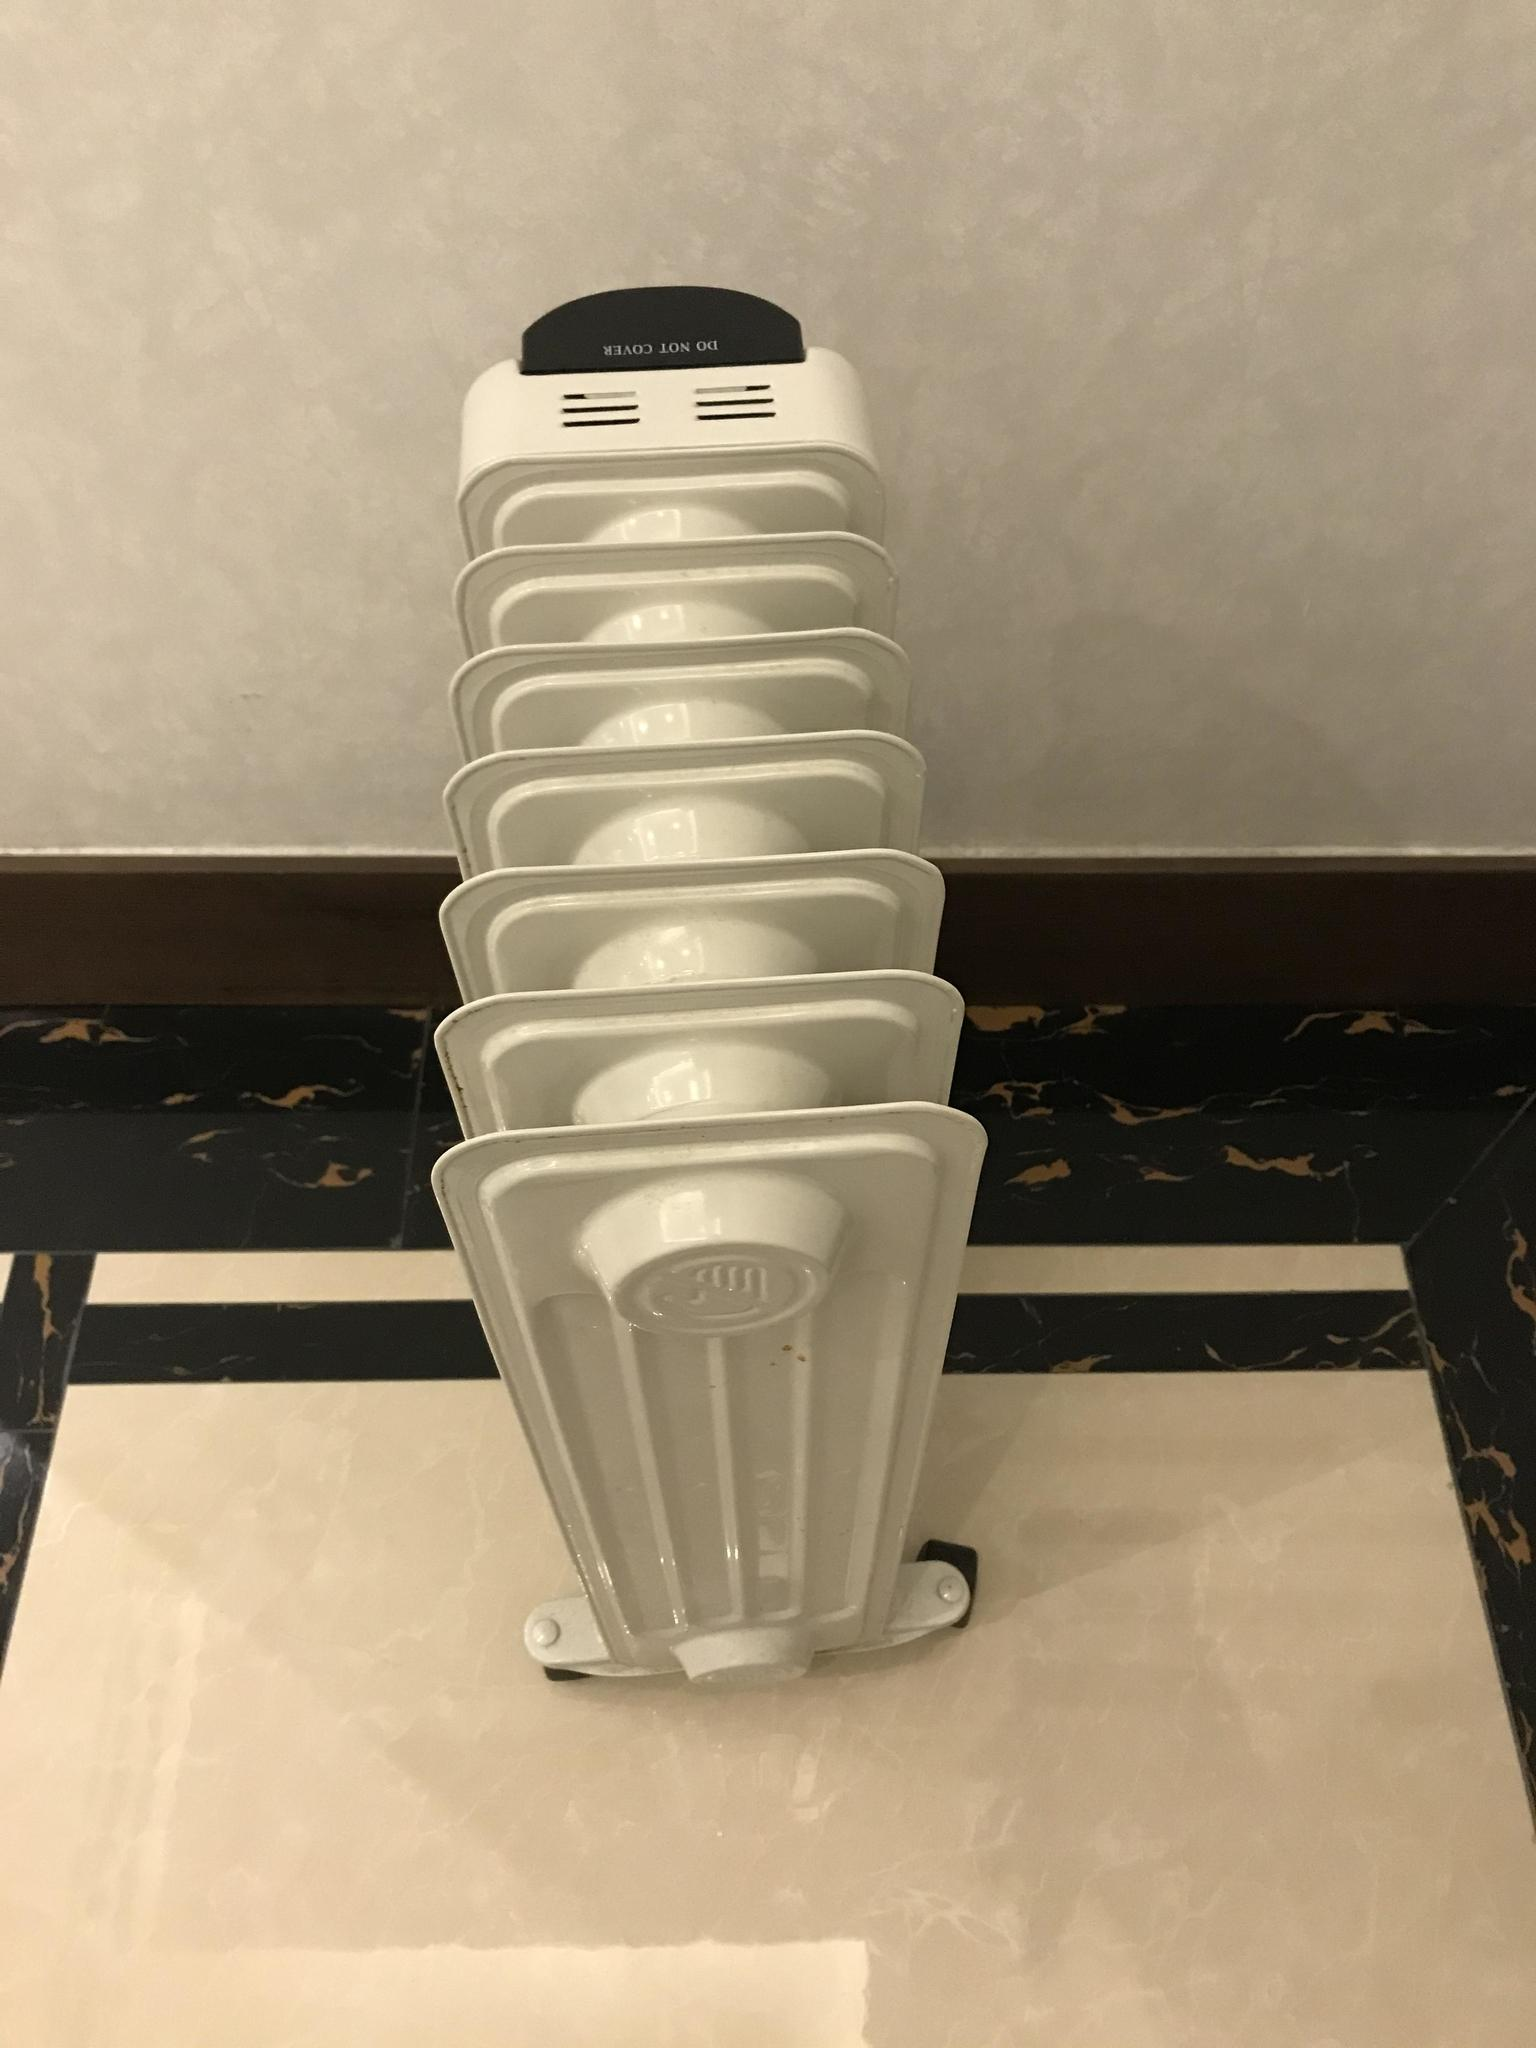 General cool Oil filled radiator heater